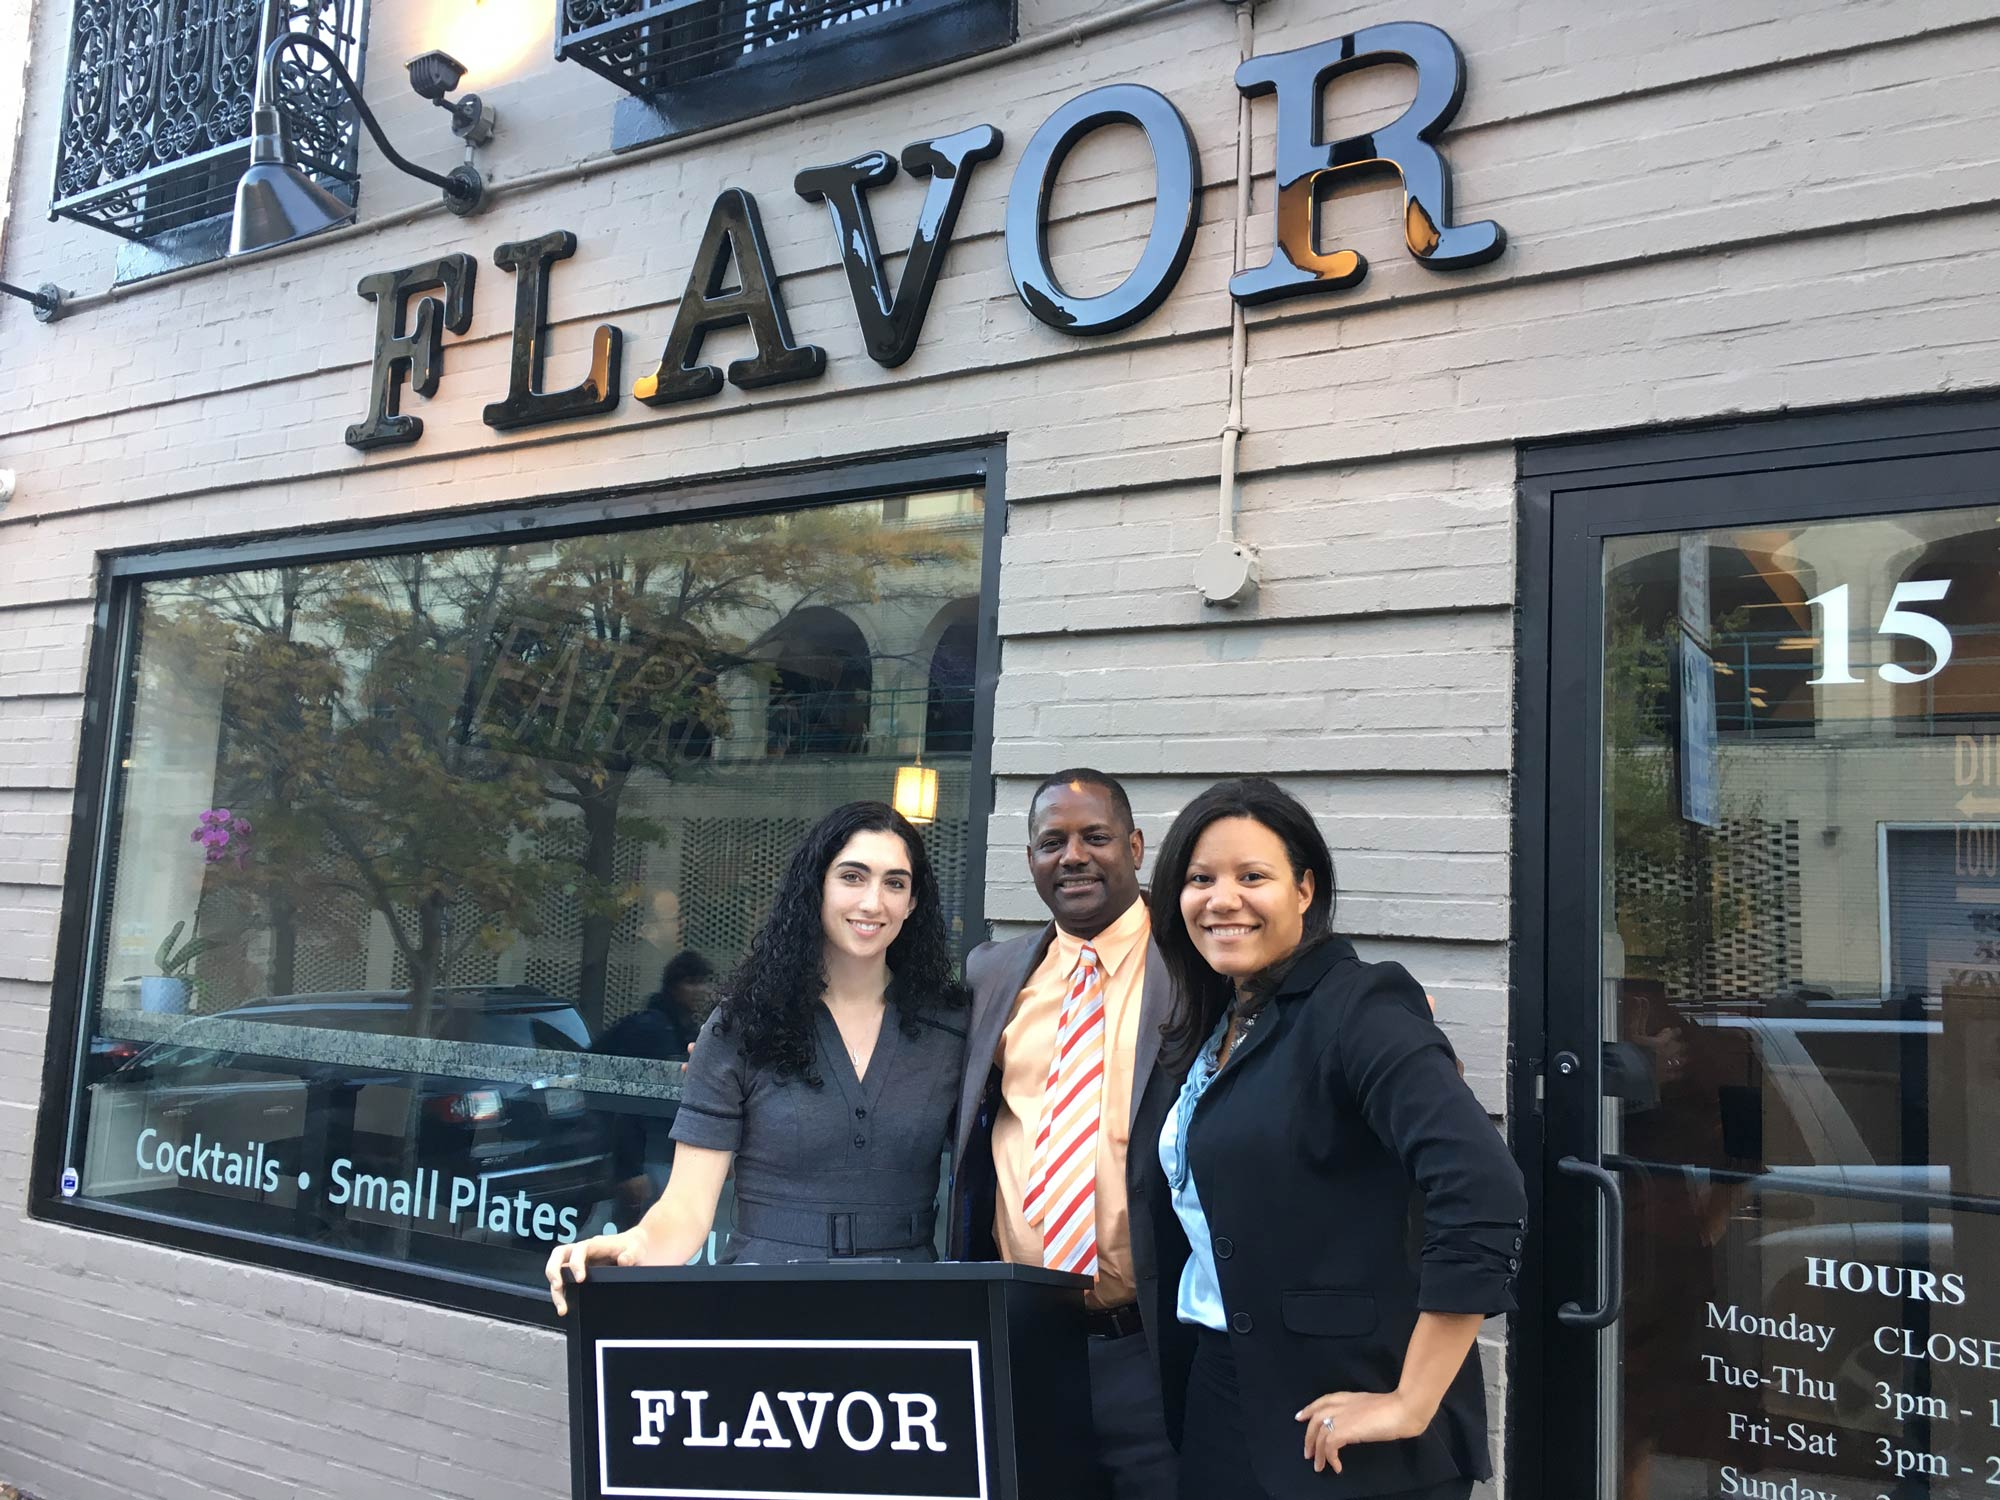 Maryland SBDC helps, 'Flavor' becomes an iconic spot for Baltimorean looking for an upscale eatery spot.